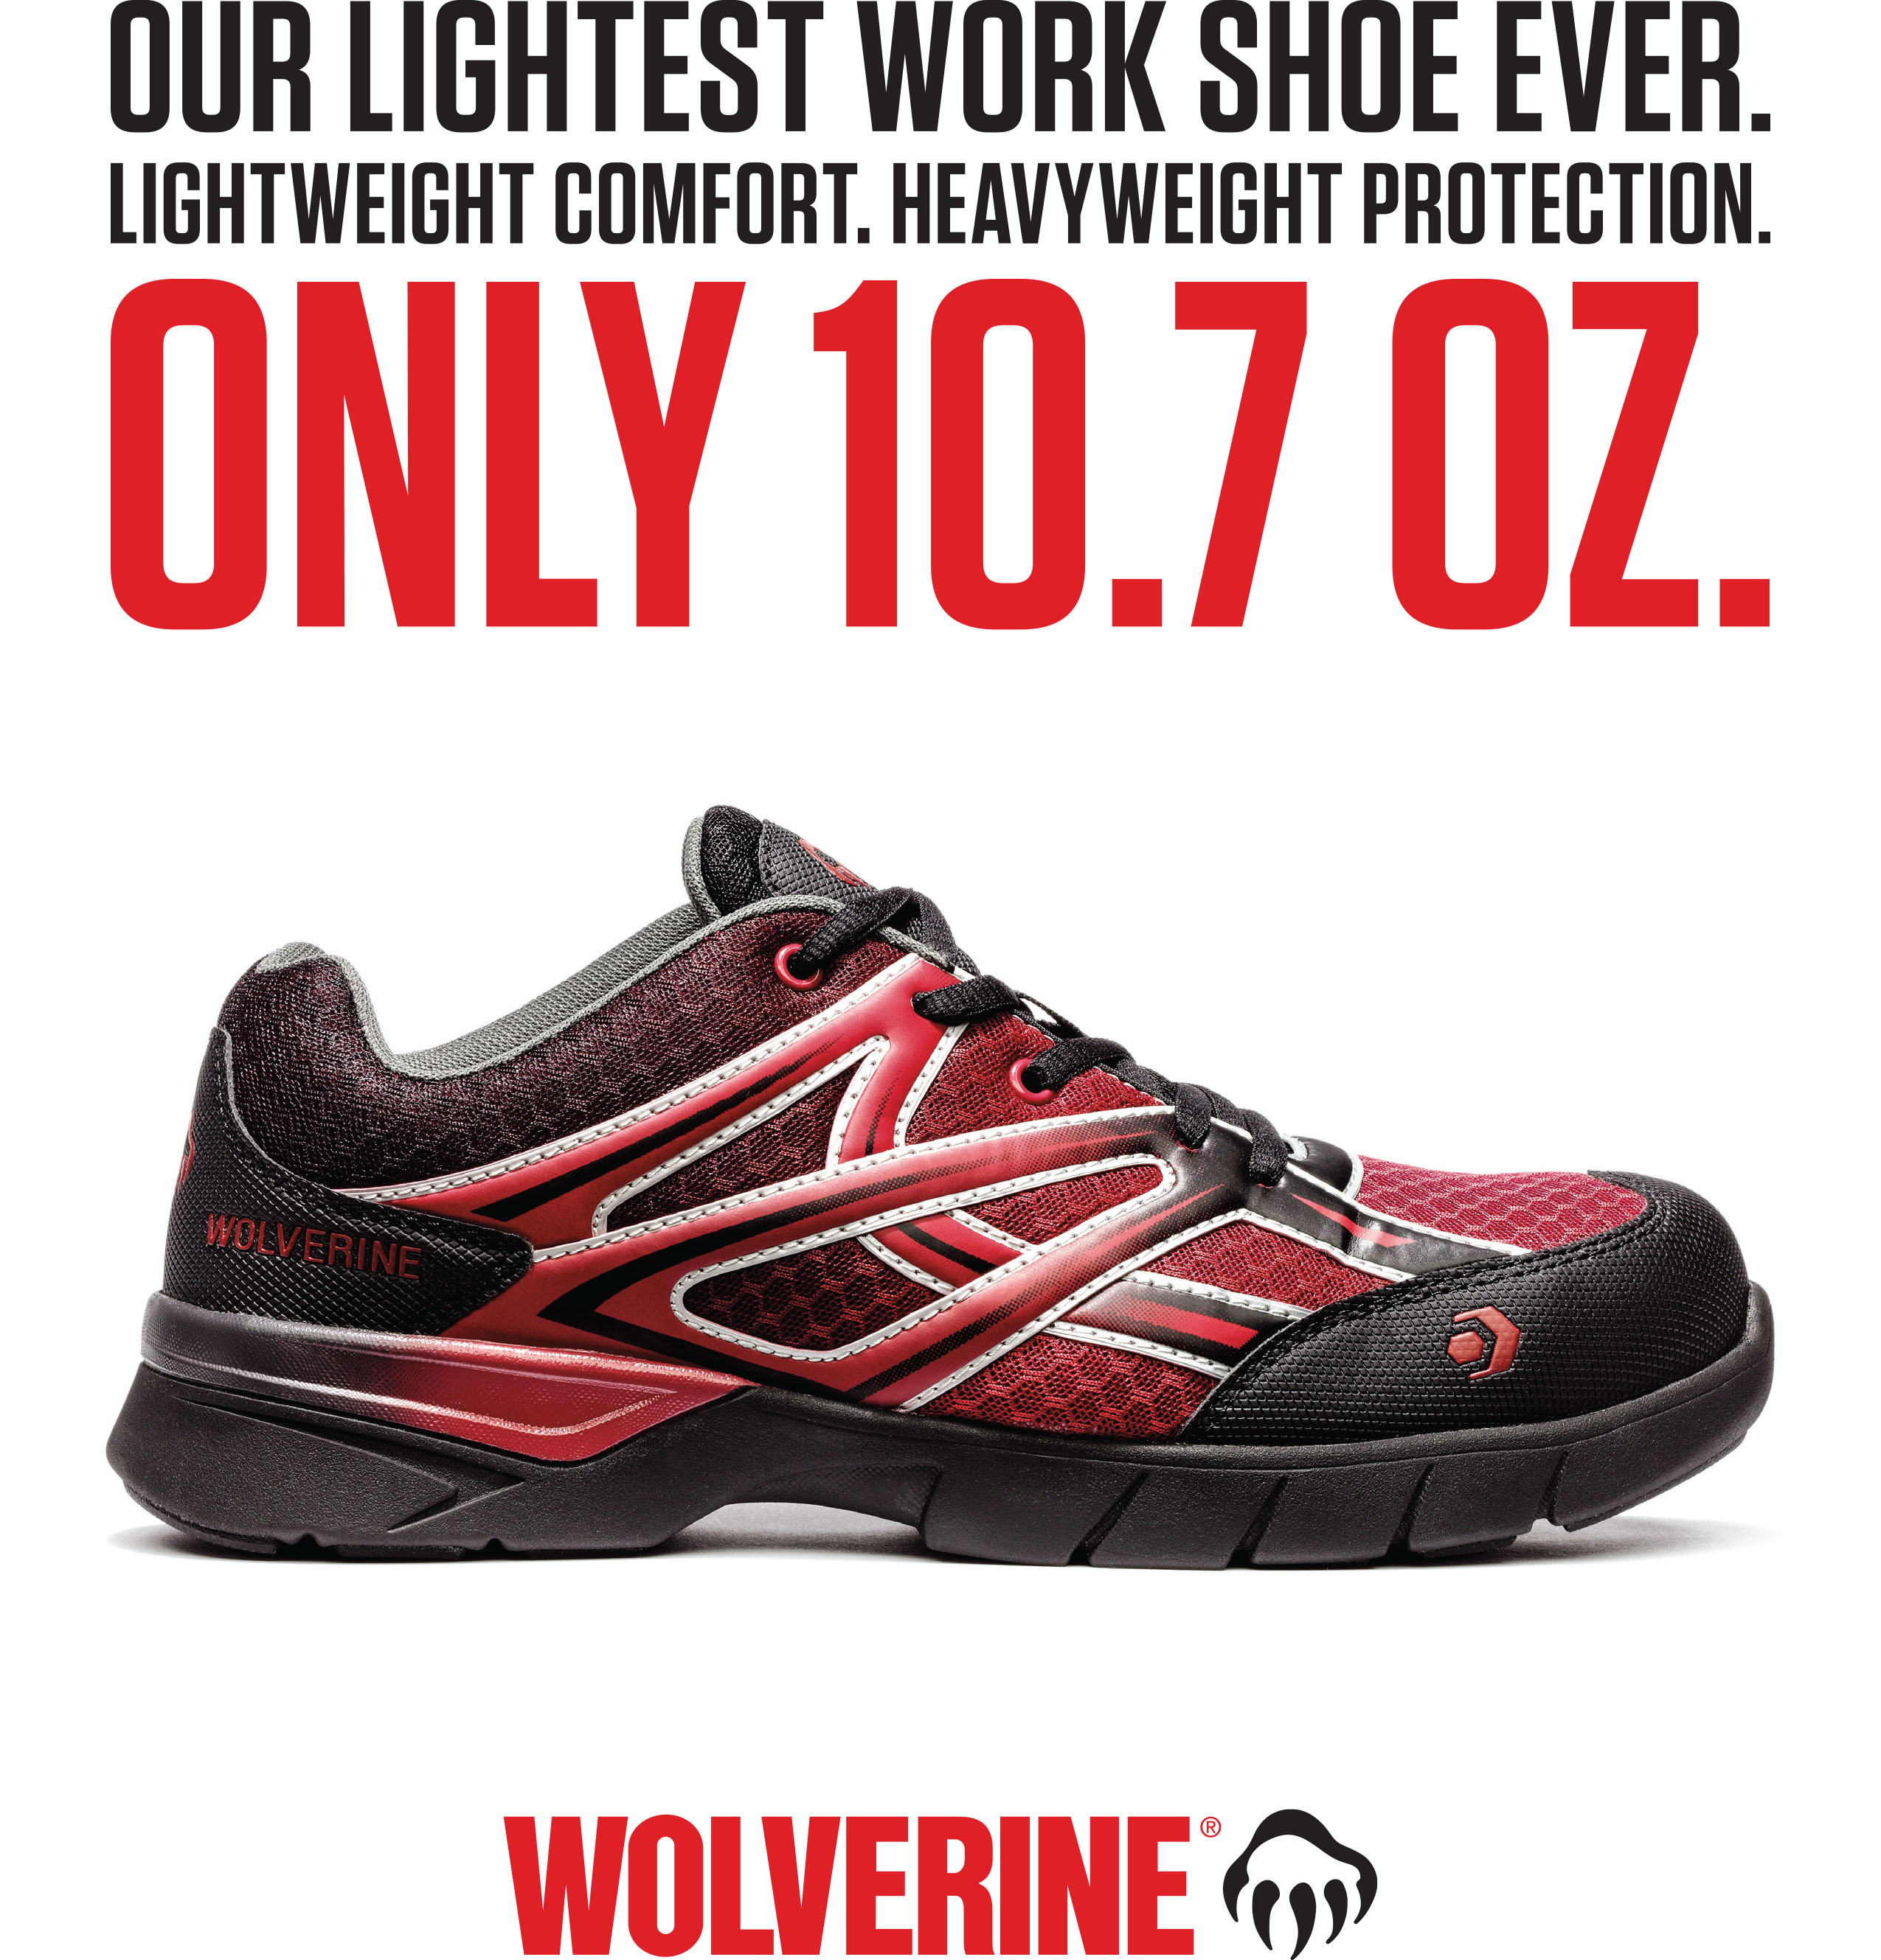 Lightest Safety-Toe Work Shoe Ever